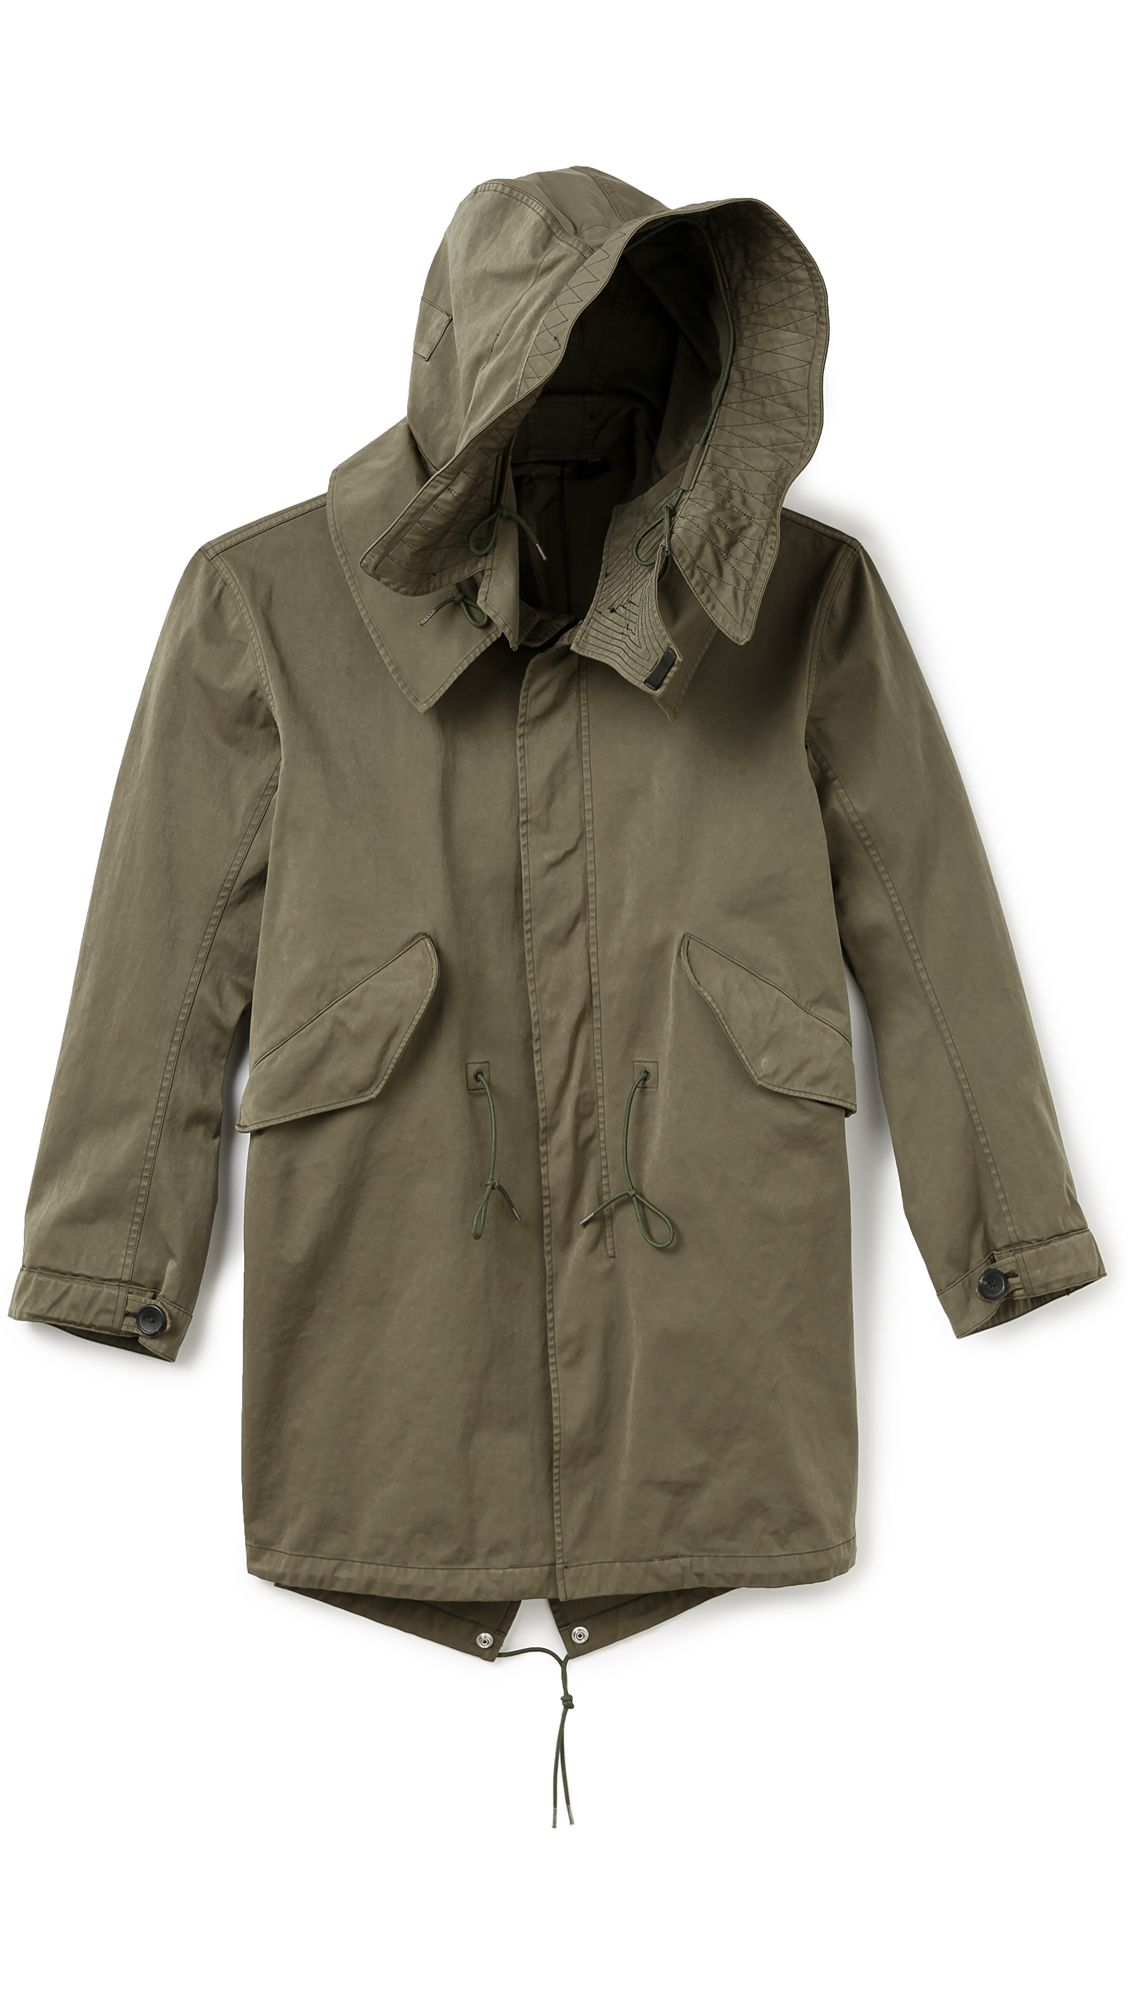 The outerwear mantel c&a